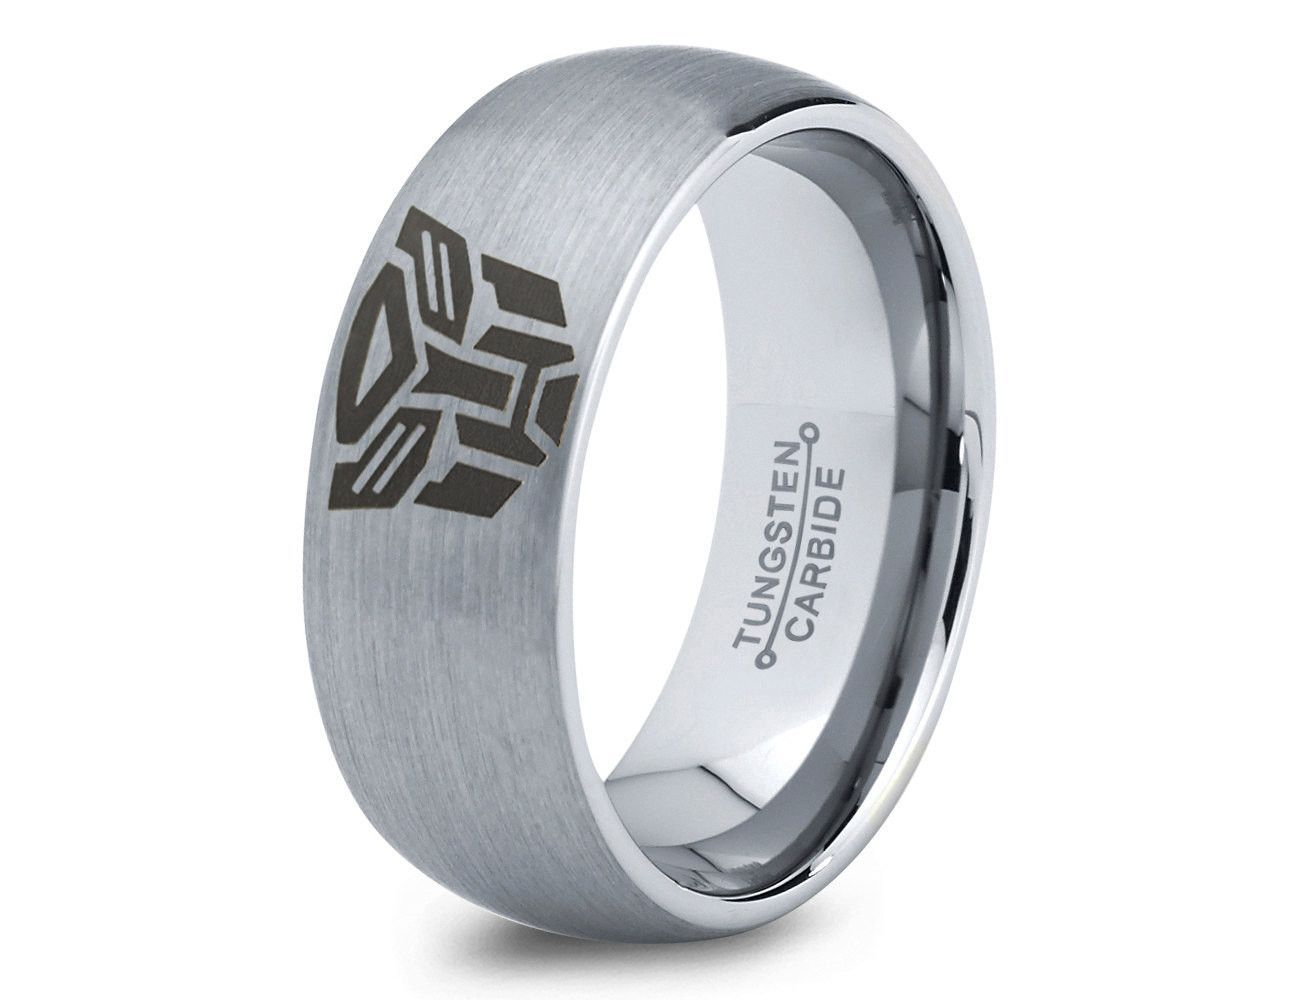 Transformers Autobot Ring Mens Fanatic Geek Sci Fi Science Fiction Boys Girls Womens: Nerdy Wedding Rings For Men At Websimilar.org